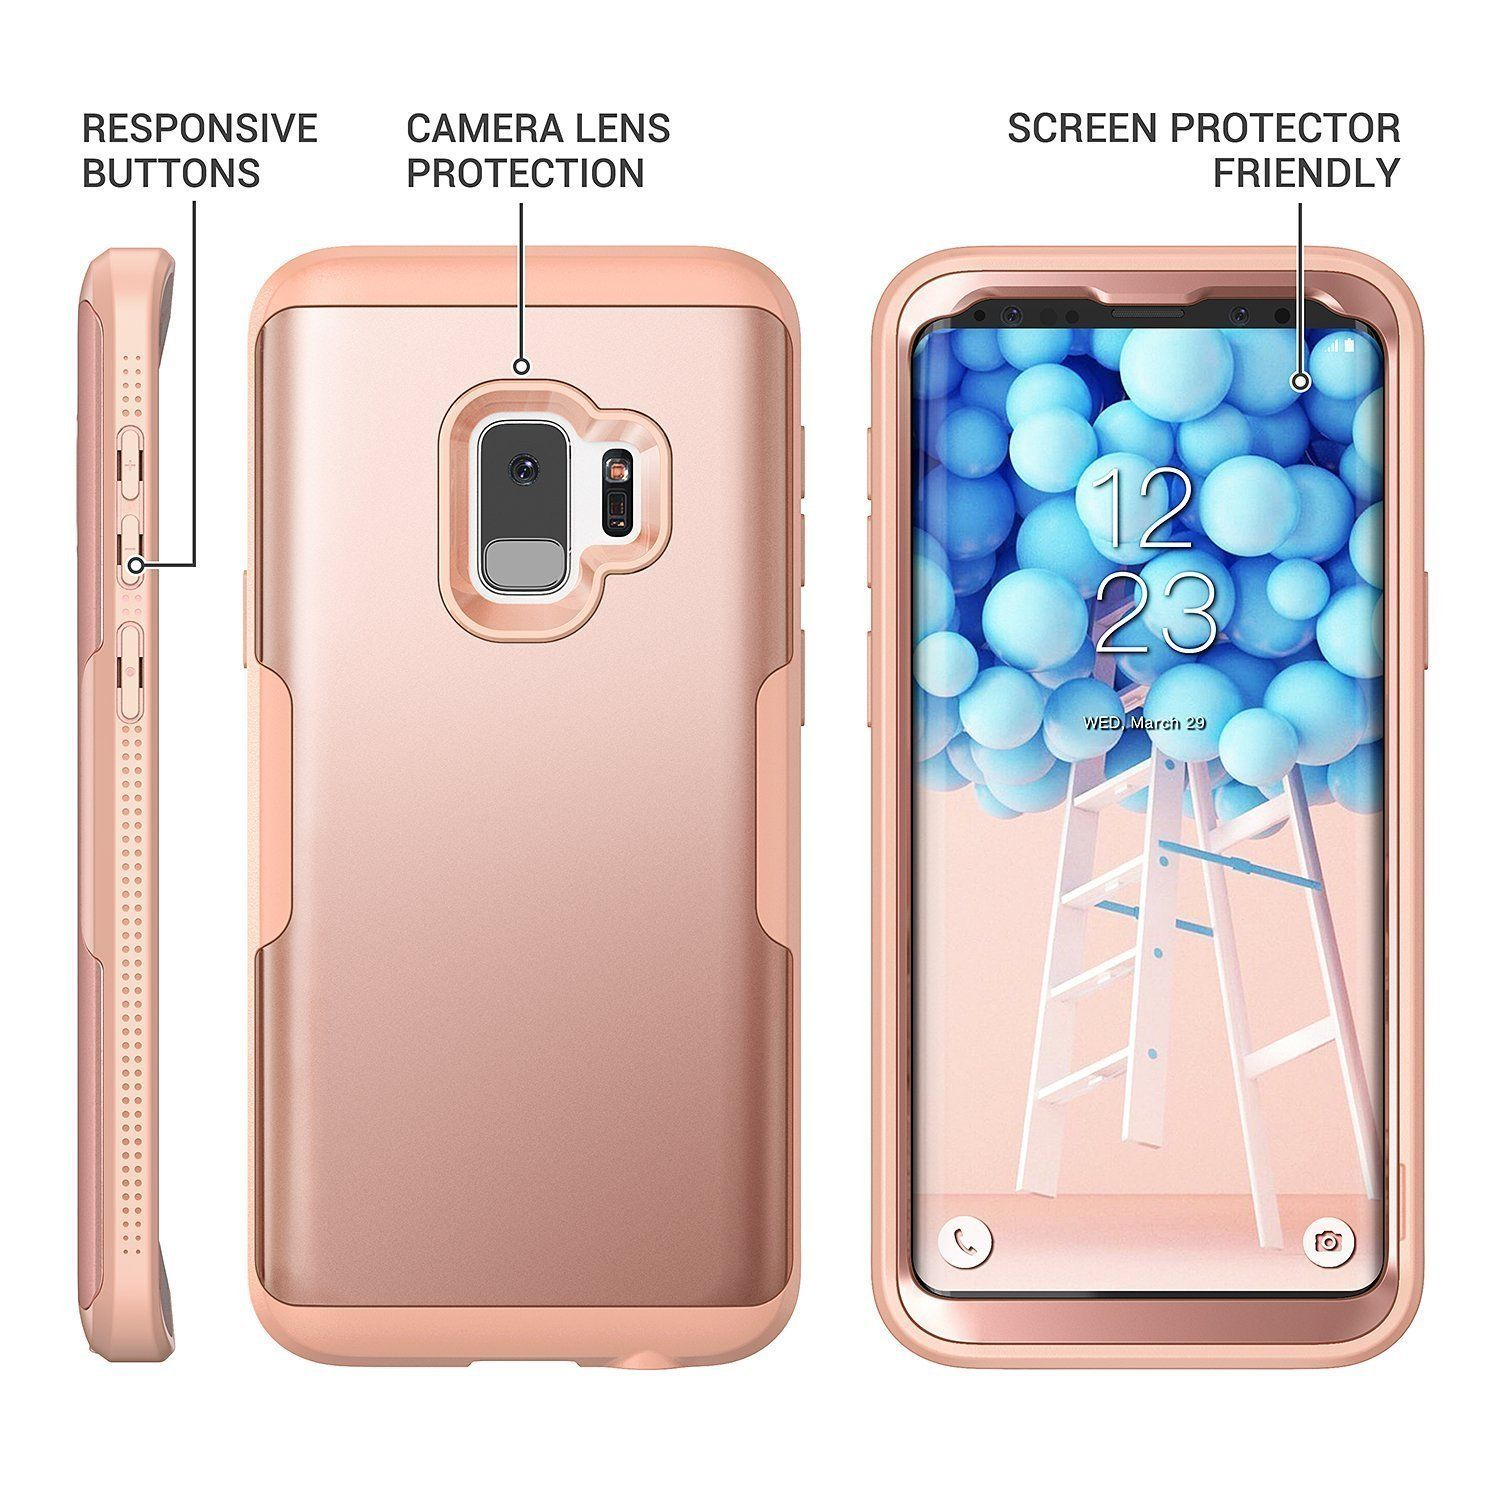 Youmaker 360 Protection Phone Case For Samsung Galaxy S9 Plus Free Shipping Heavy Duty Milita Cell Phone Case Accessories Phone Cases Phone Case Accessories